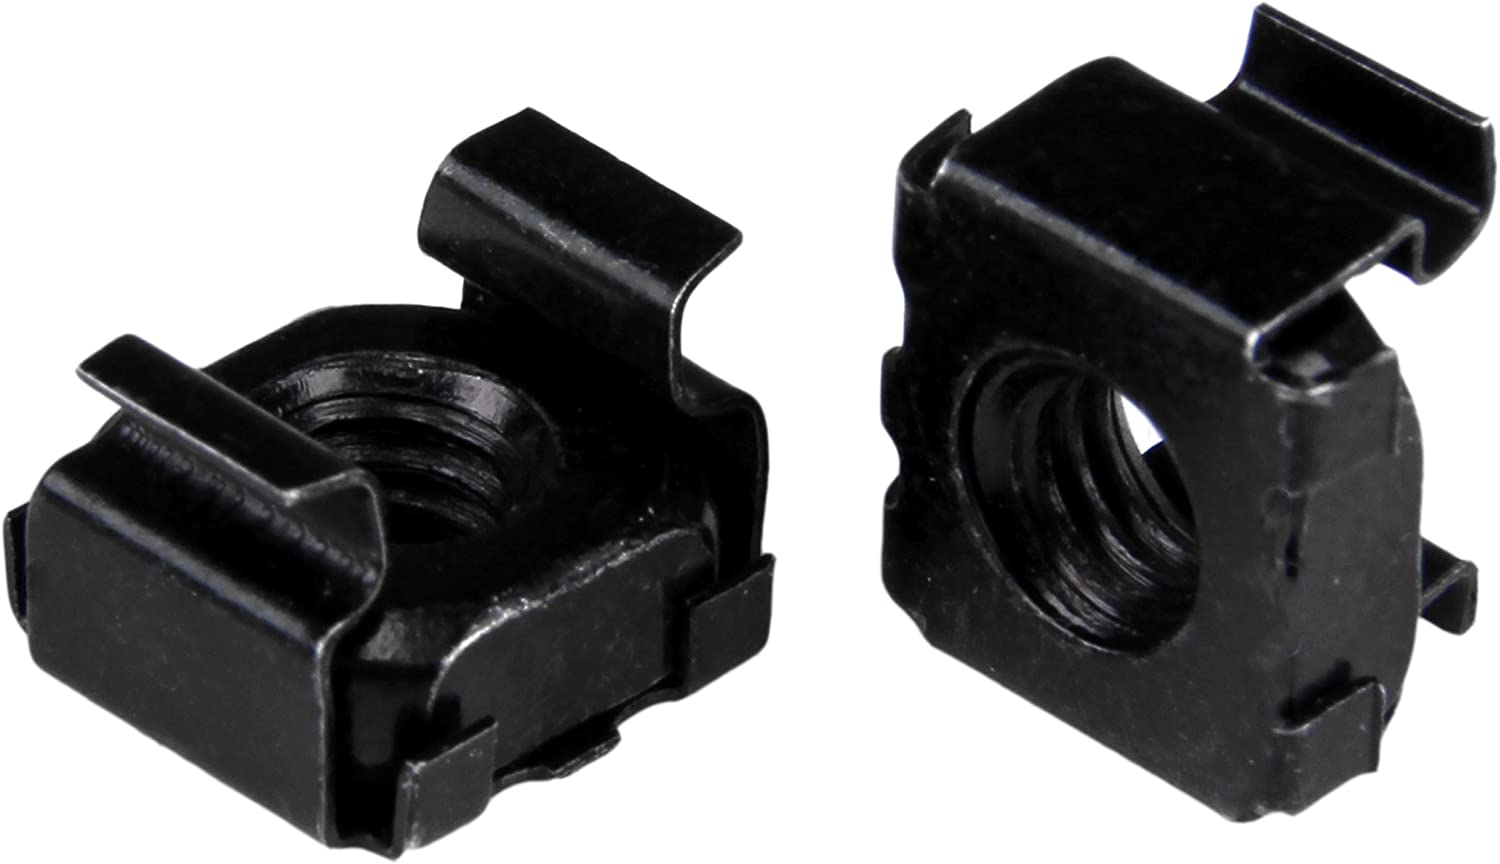 StarTech.com M5 Cage Nuts - 100 Pack, Black - M5 Mounting Cage Nuts for Server Rack & Cabinet (CABCAGENUT2B) Black Cage Nuts